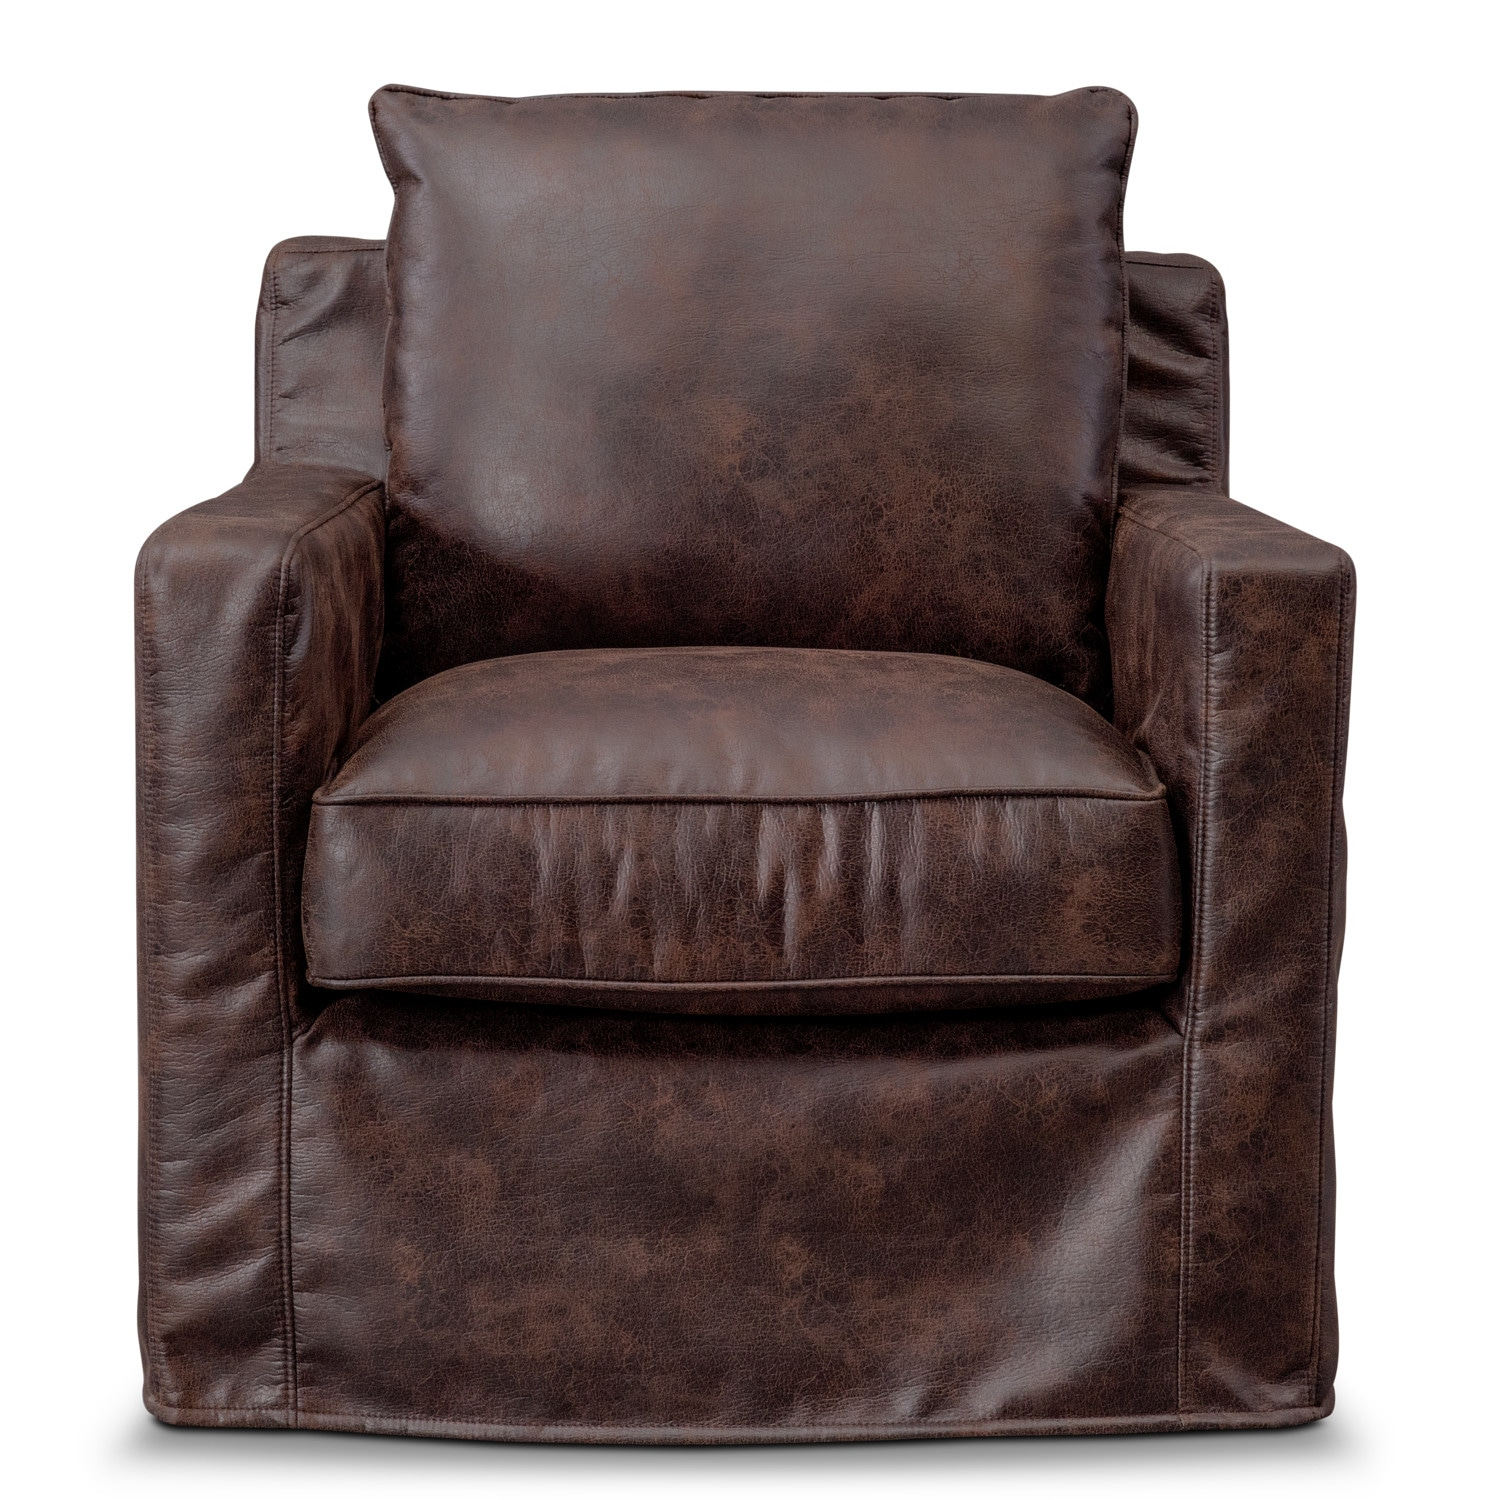 Eastwood Swivel Chair – Coffee | American Signature Furniture In Loft Black Swivel Accent Chairs (Photo 17 of 25)